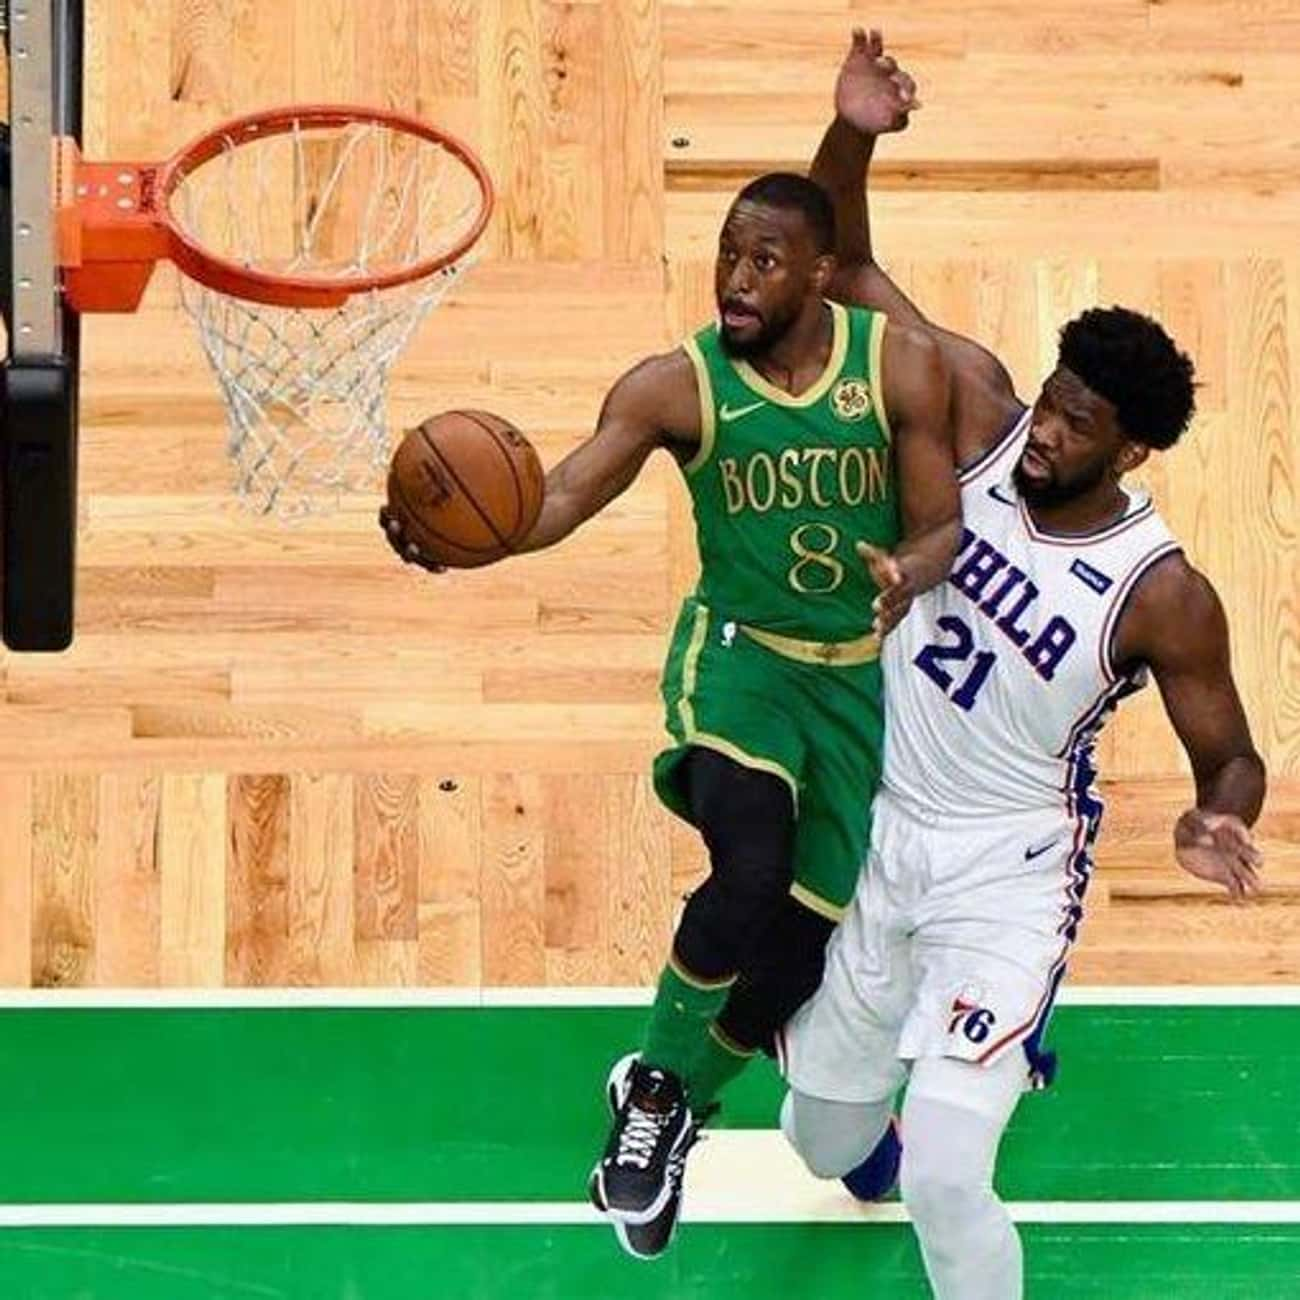 Boston Celtics is listed (or ranked) 4 on the list The Ugliest NBA Jerseys Of The 2019-2020 Season